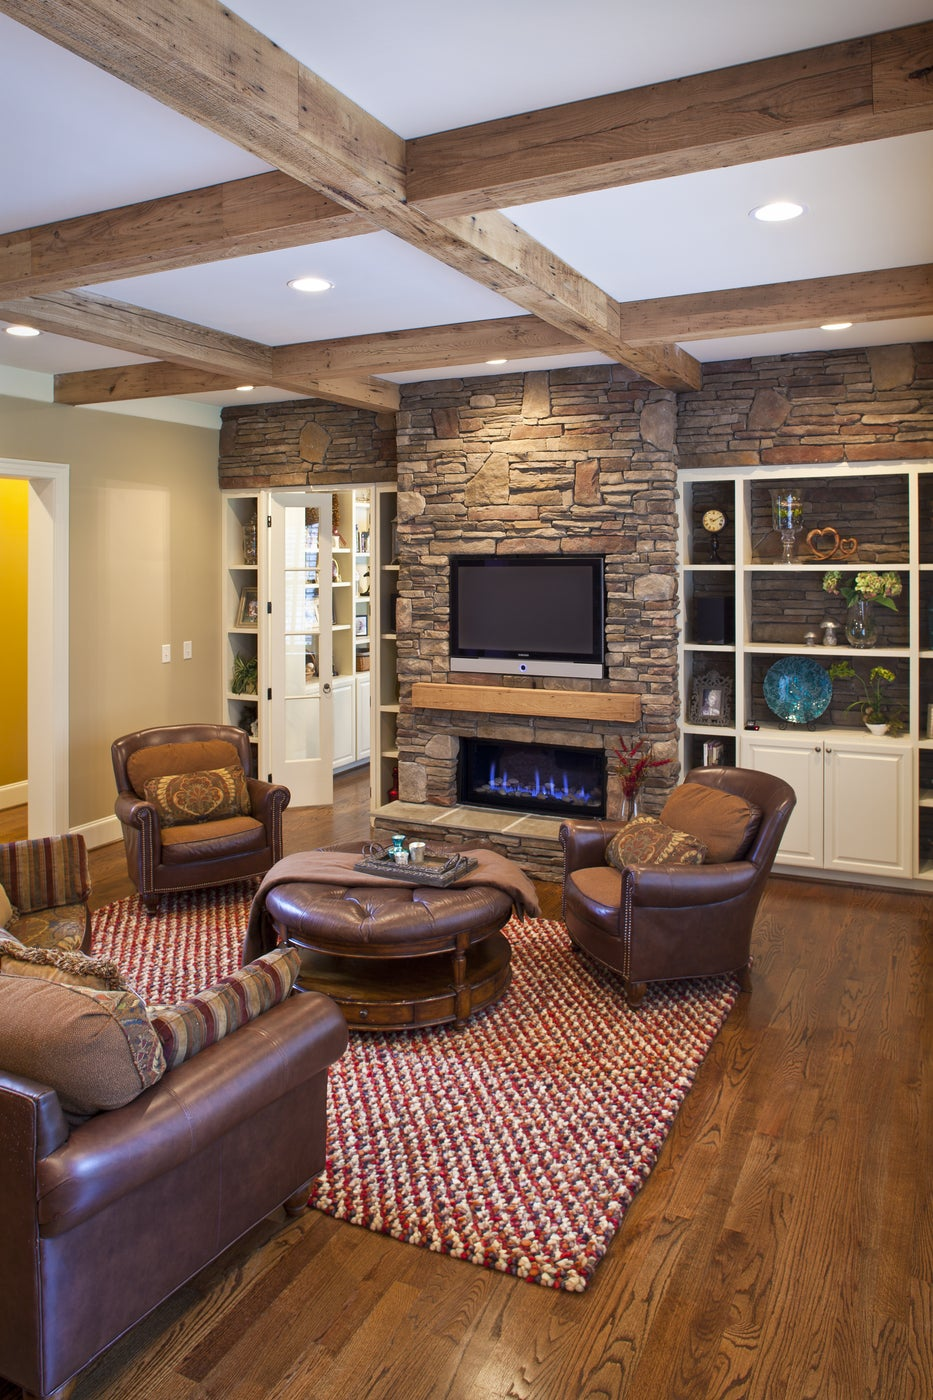 Cozy living room with reclaimed wood beams and mantel, and stone fireplace wall